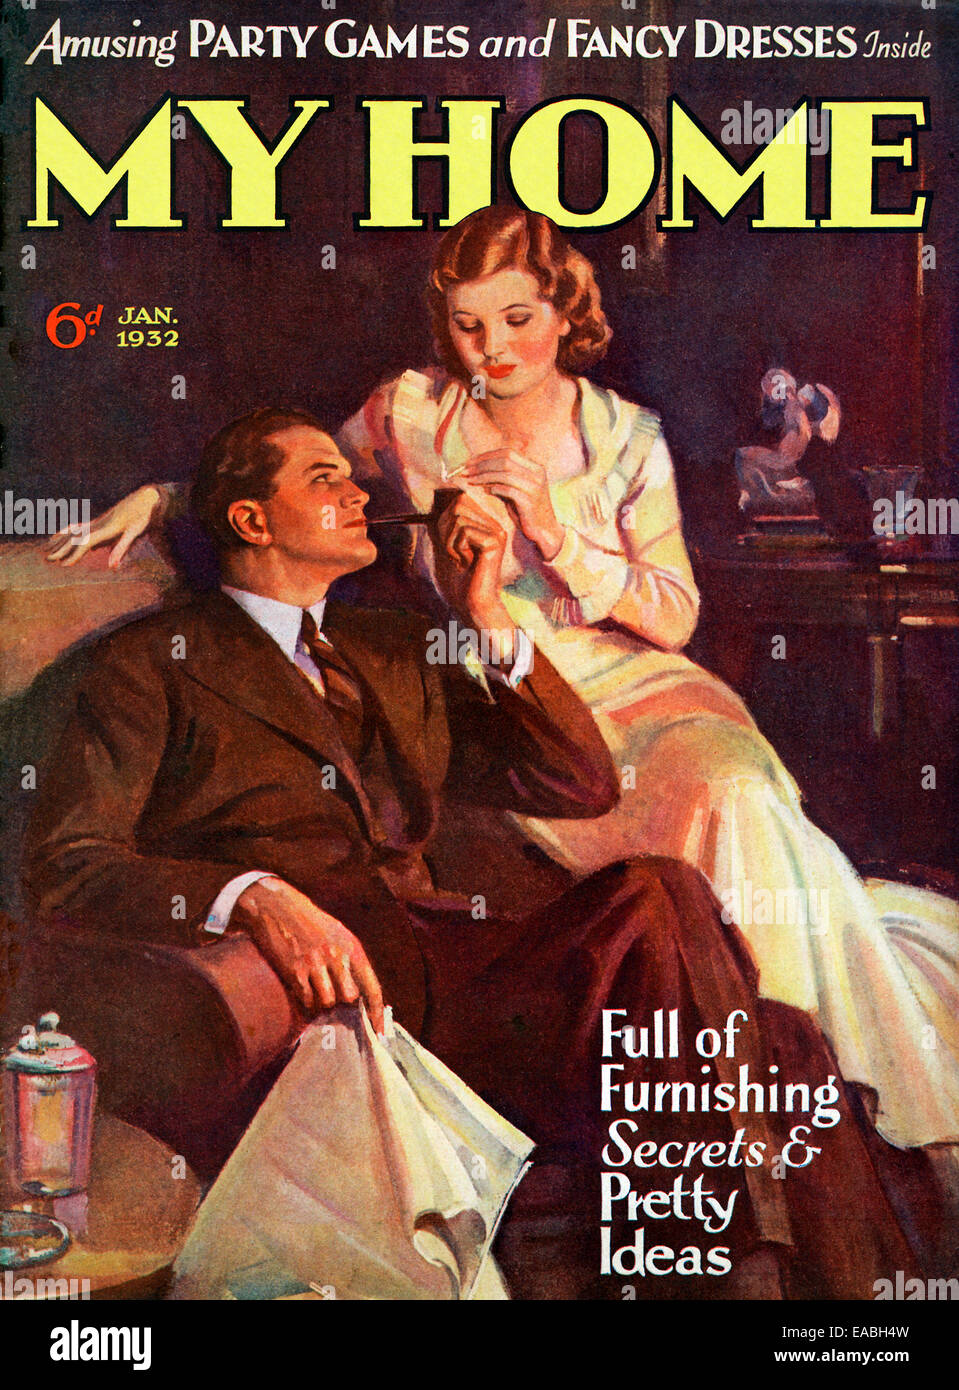 My Home, Pipe Smoking, 1932 cover of the English home and lifestyle magazine for the new suburban middle class, - Stock Image